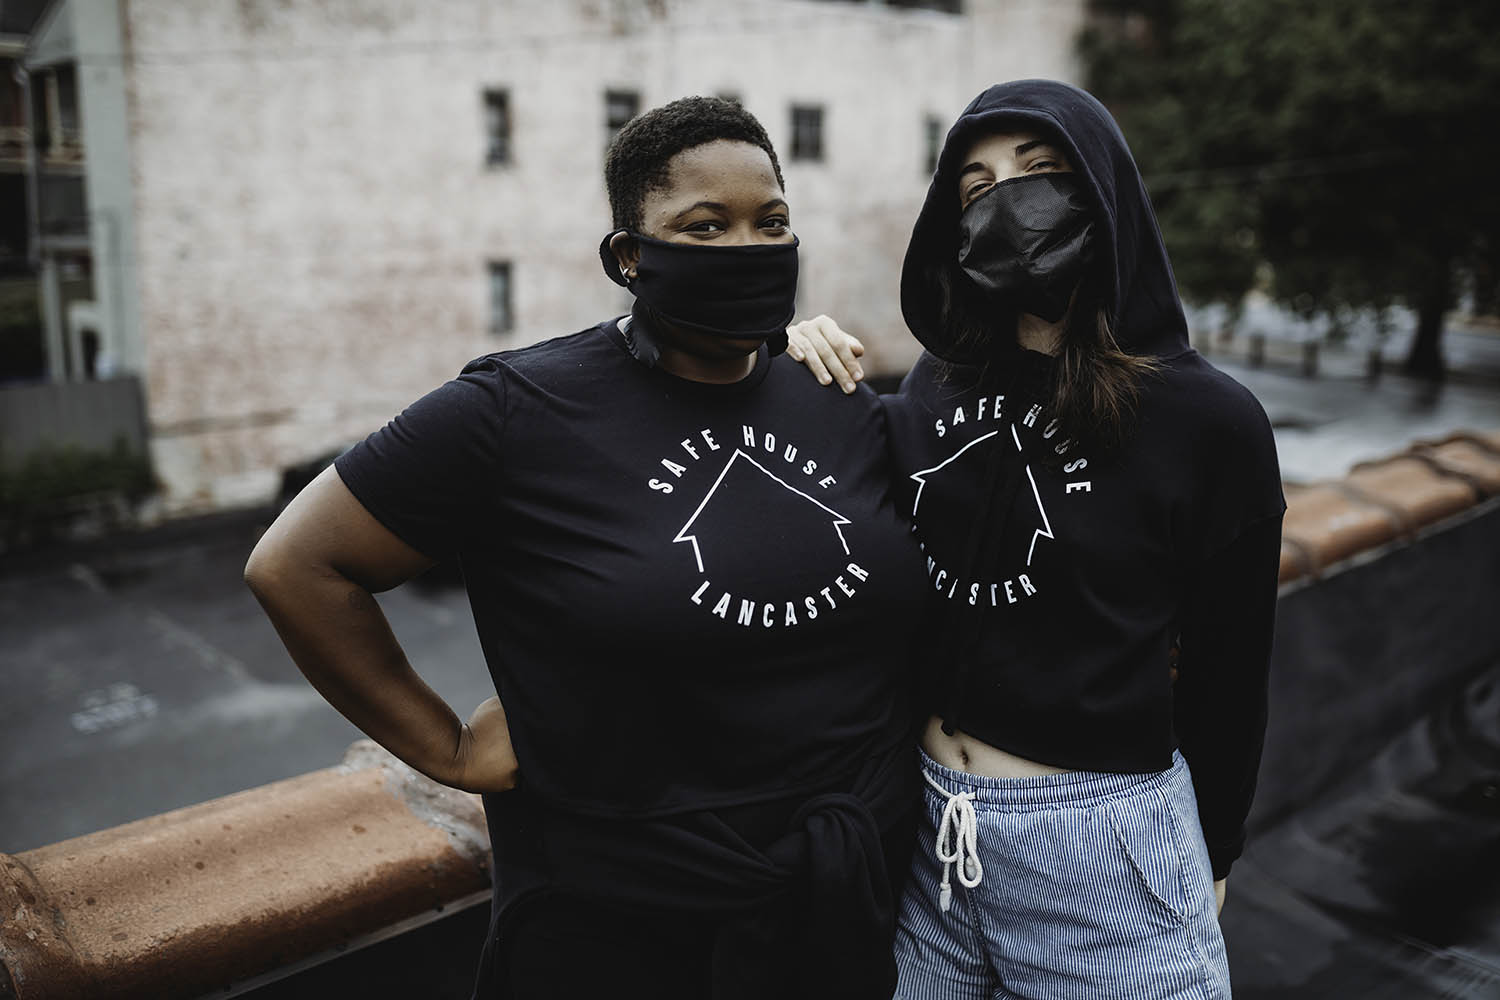 Two women embracing in SafeHouse branded tops